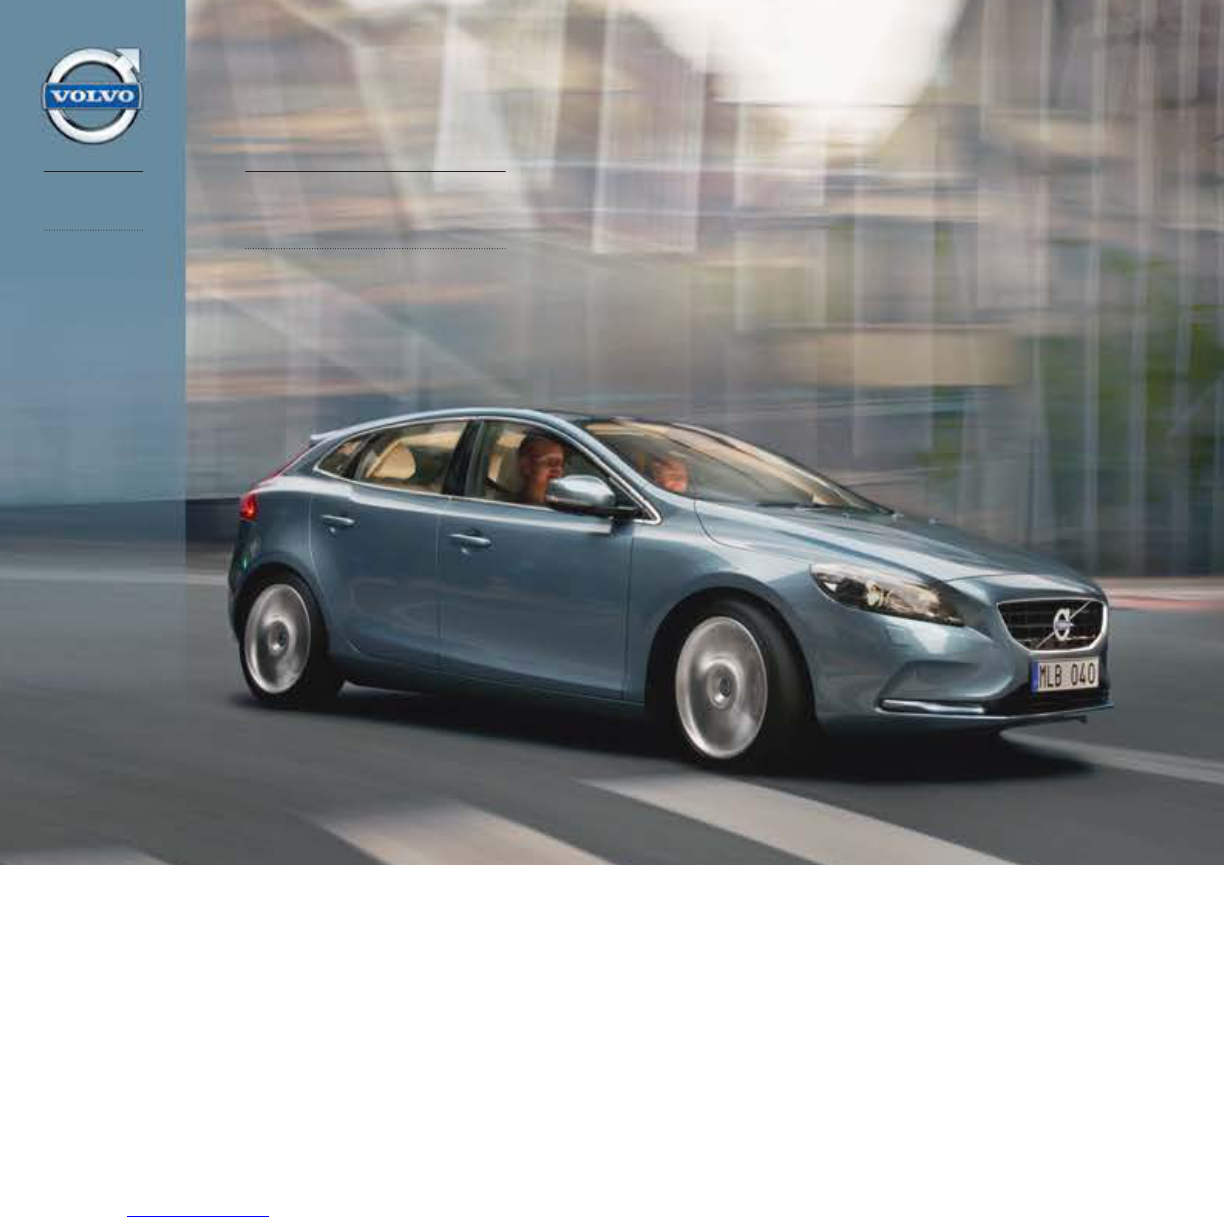 volvo v40 99 manual sample user manual u2022 rh dobrev co volvo s40 v40 owners manual 1999 volvo v40 1999 owners manual